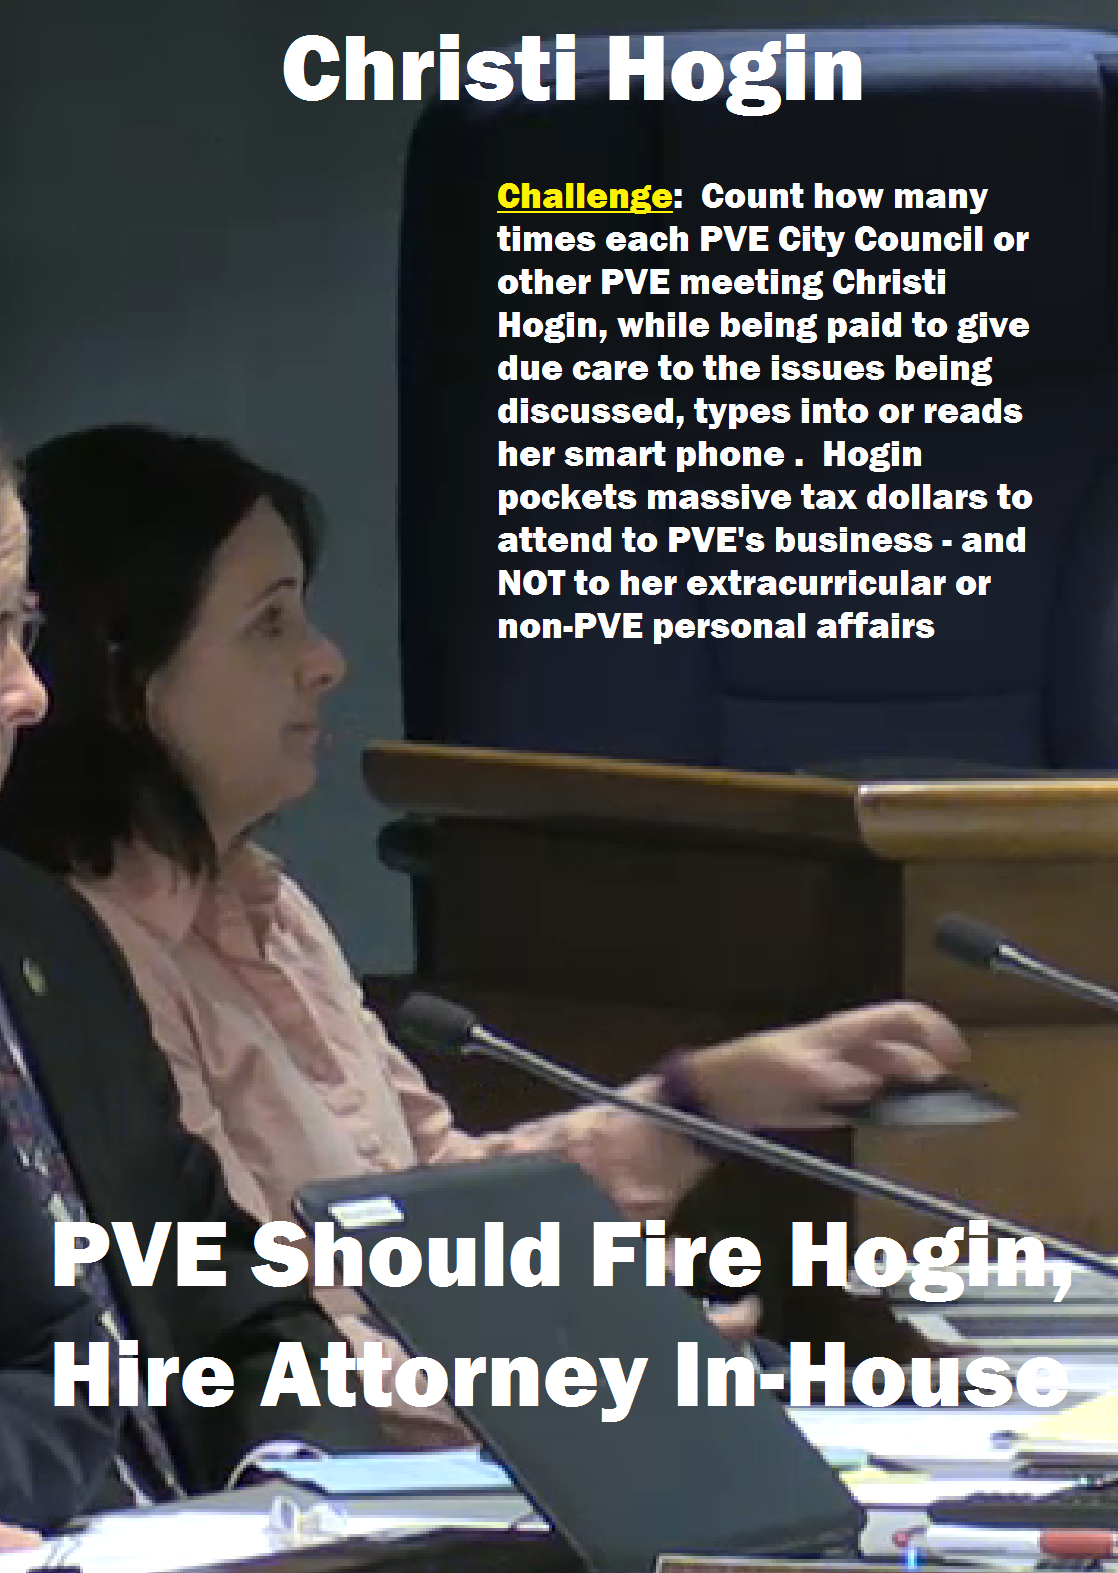 Hogin Using Mobile Phone City Council Meeting 03-08-2016 - Cropped & Annotated